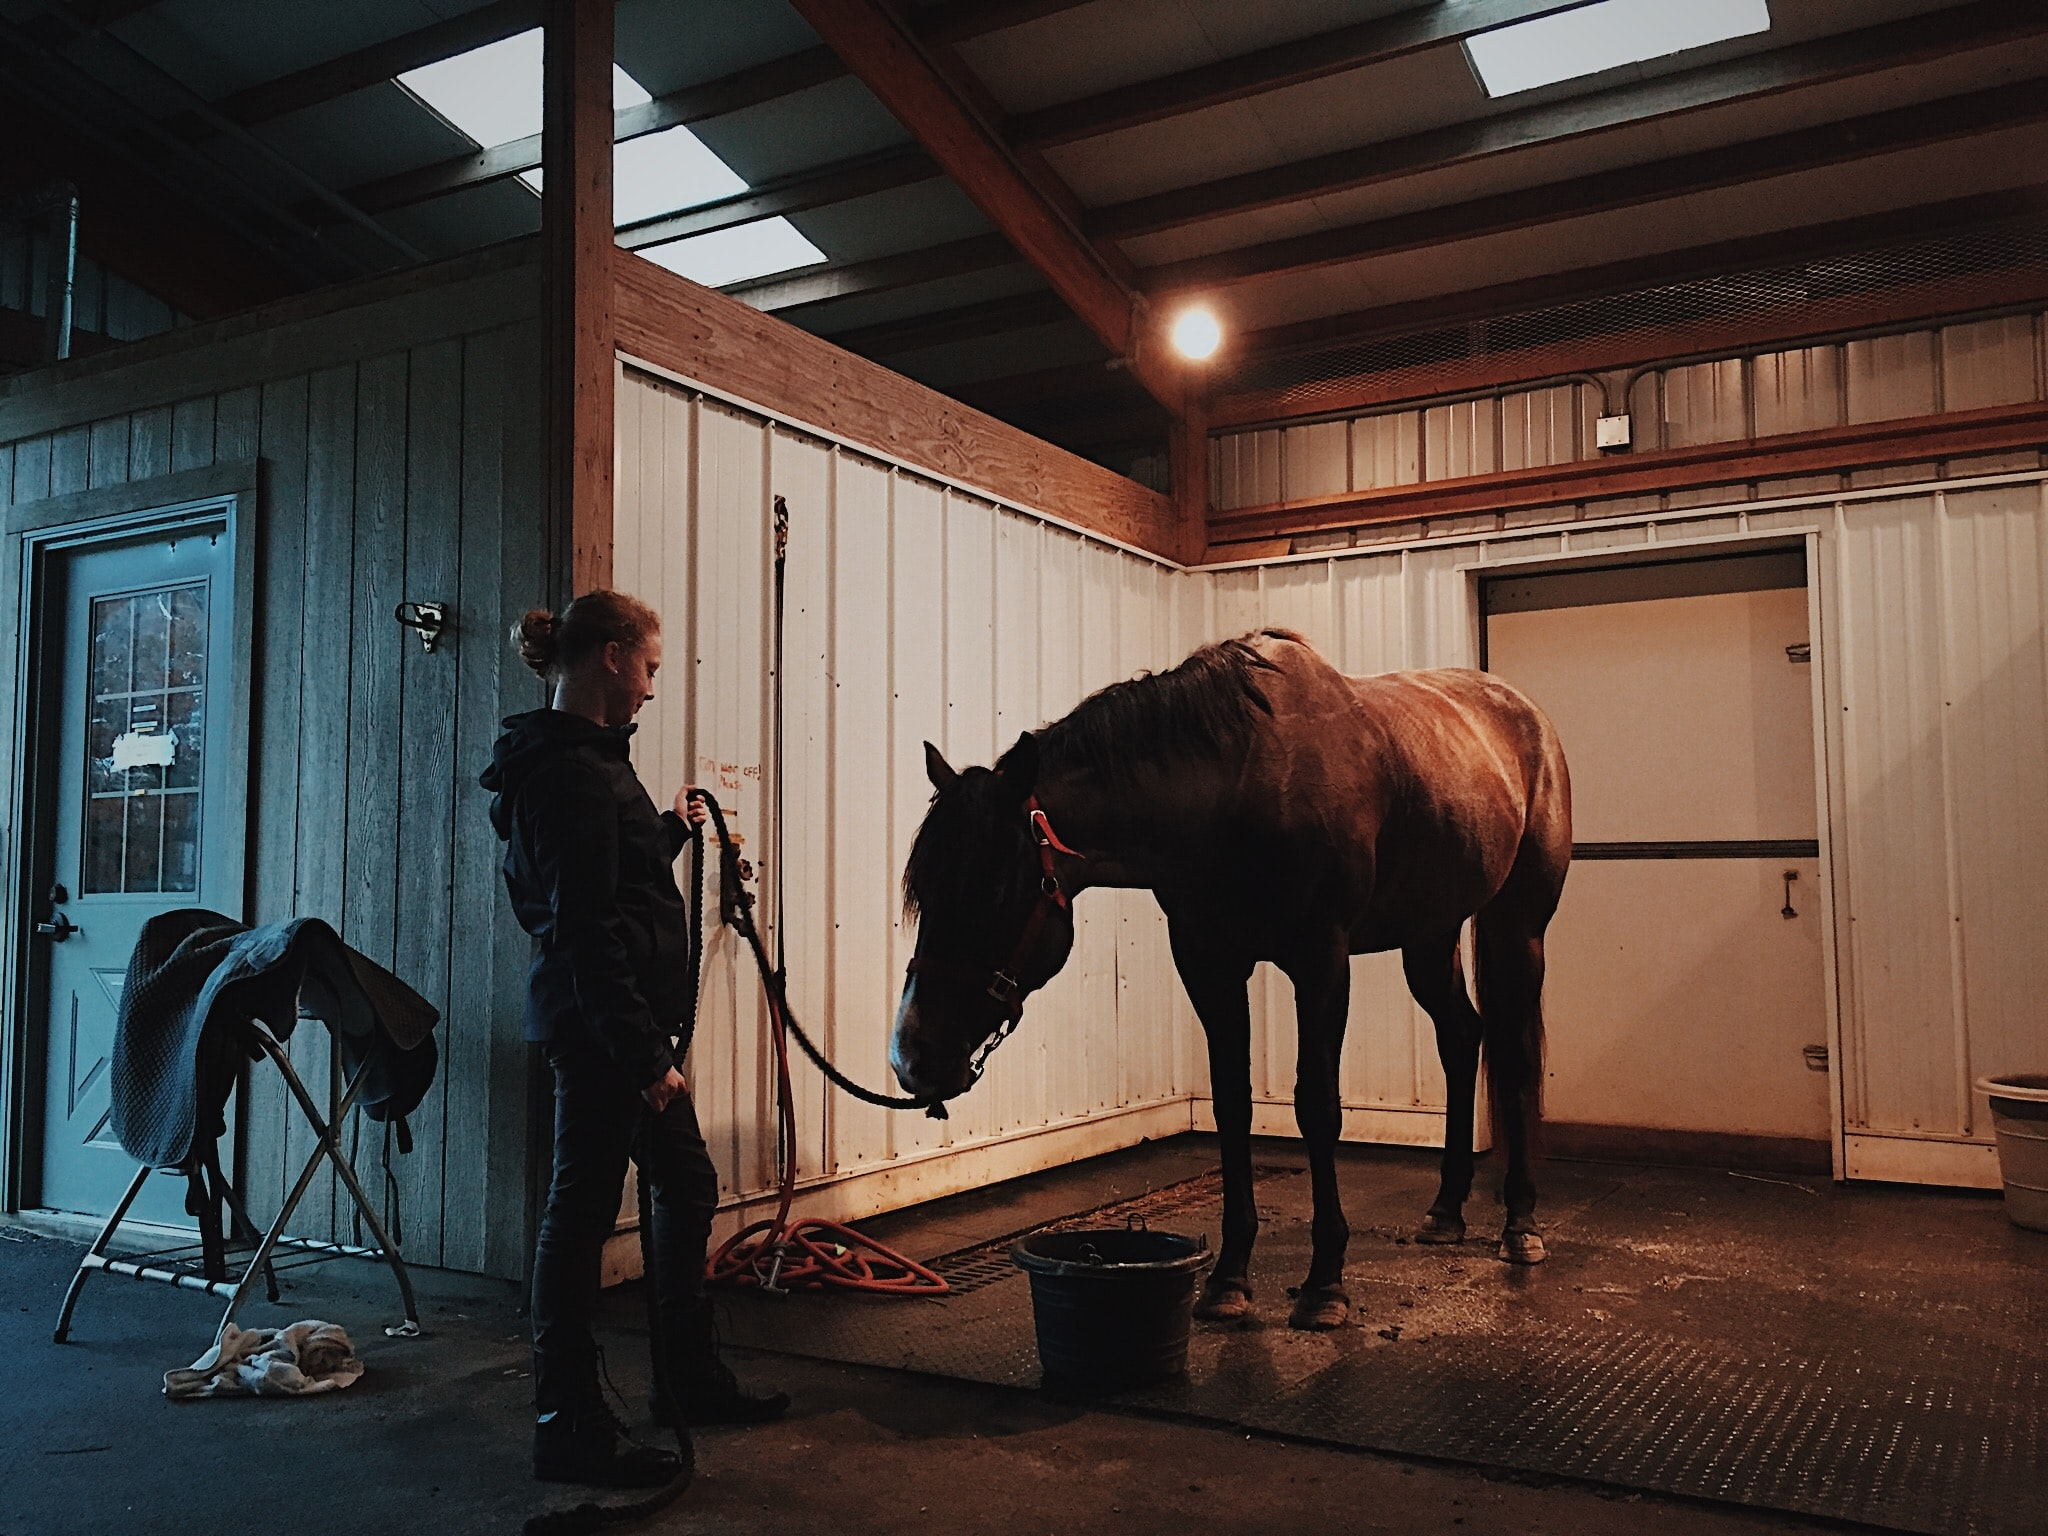 man standing in front of horse